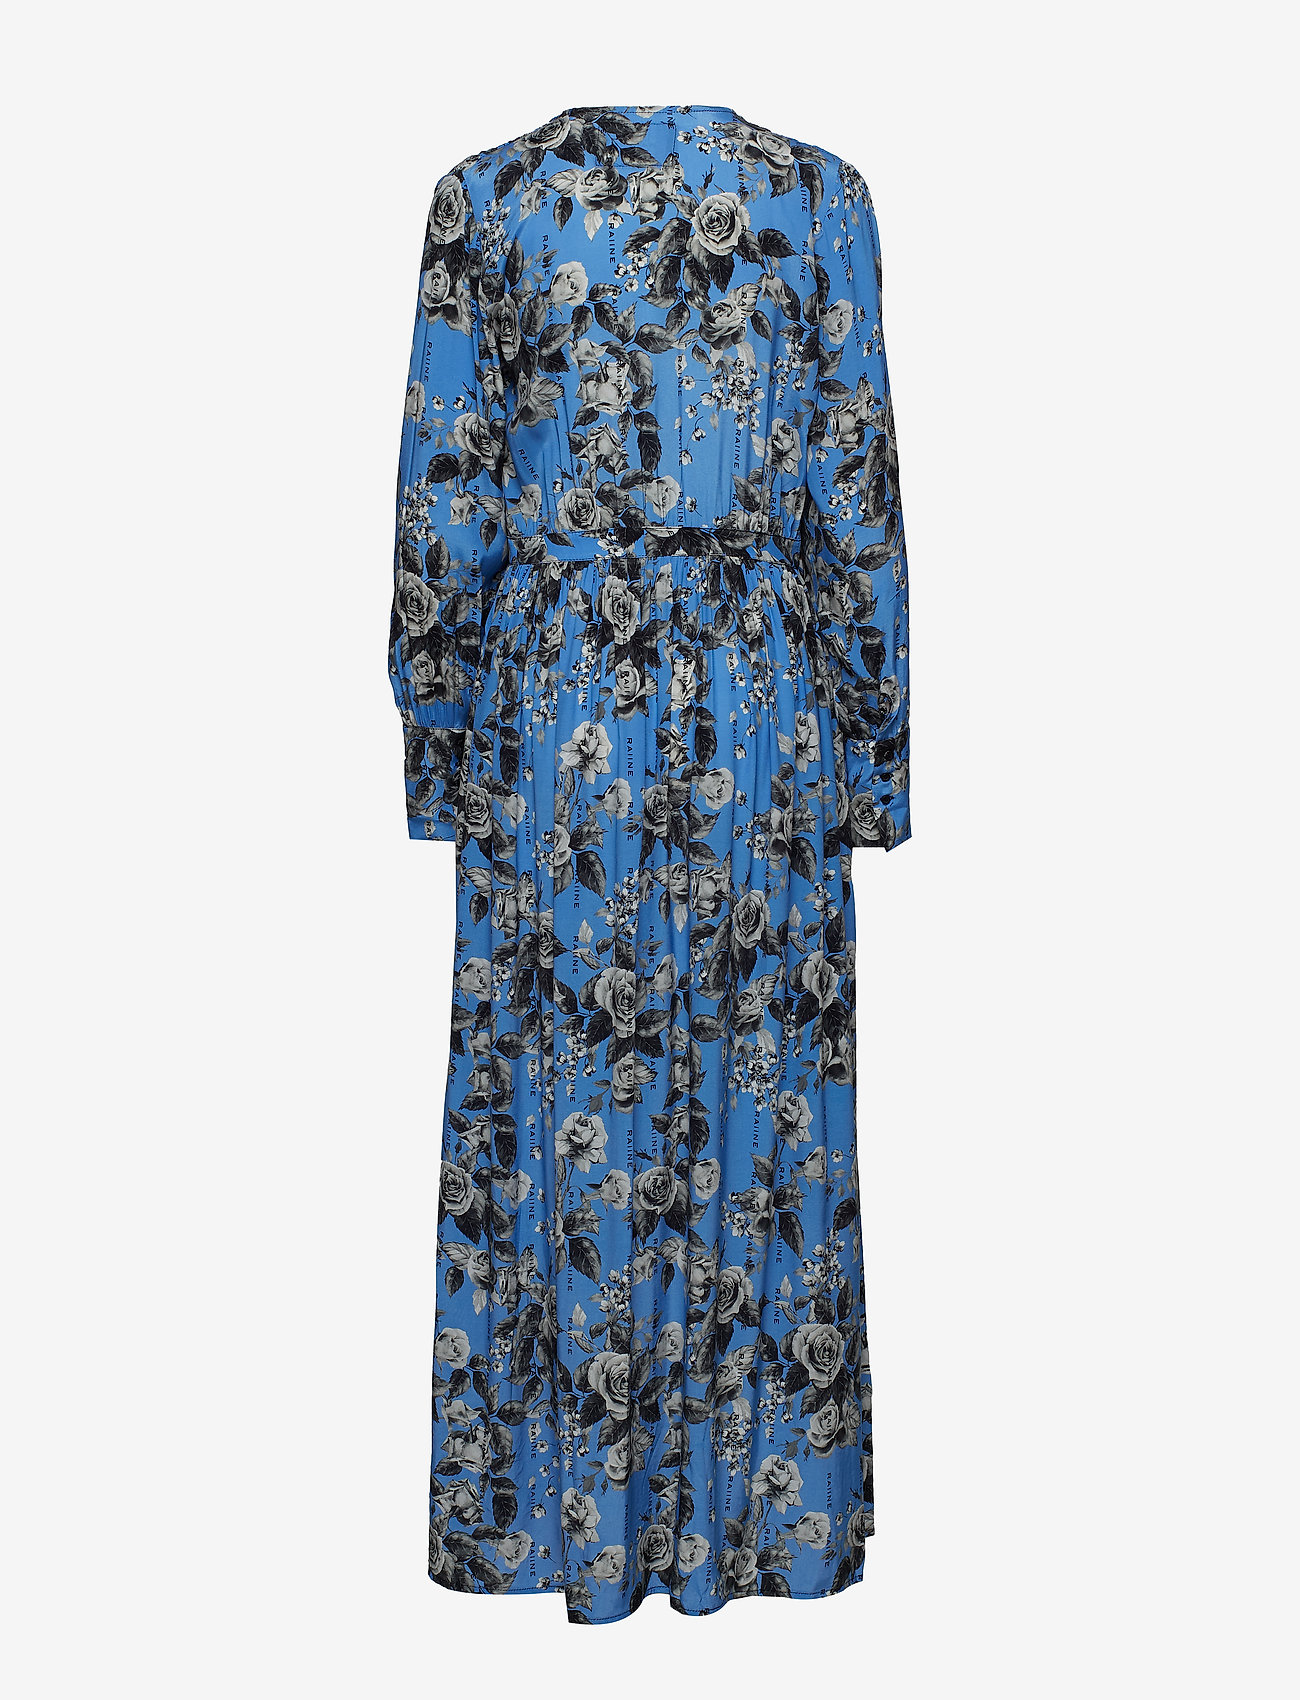 Raiine Altona Dress - Robes Regatta Blue